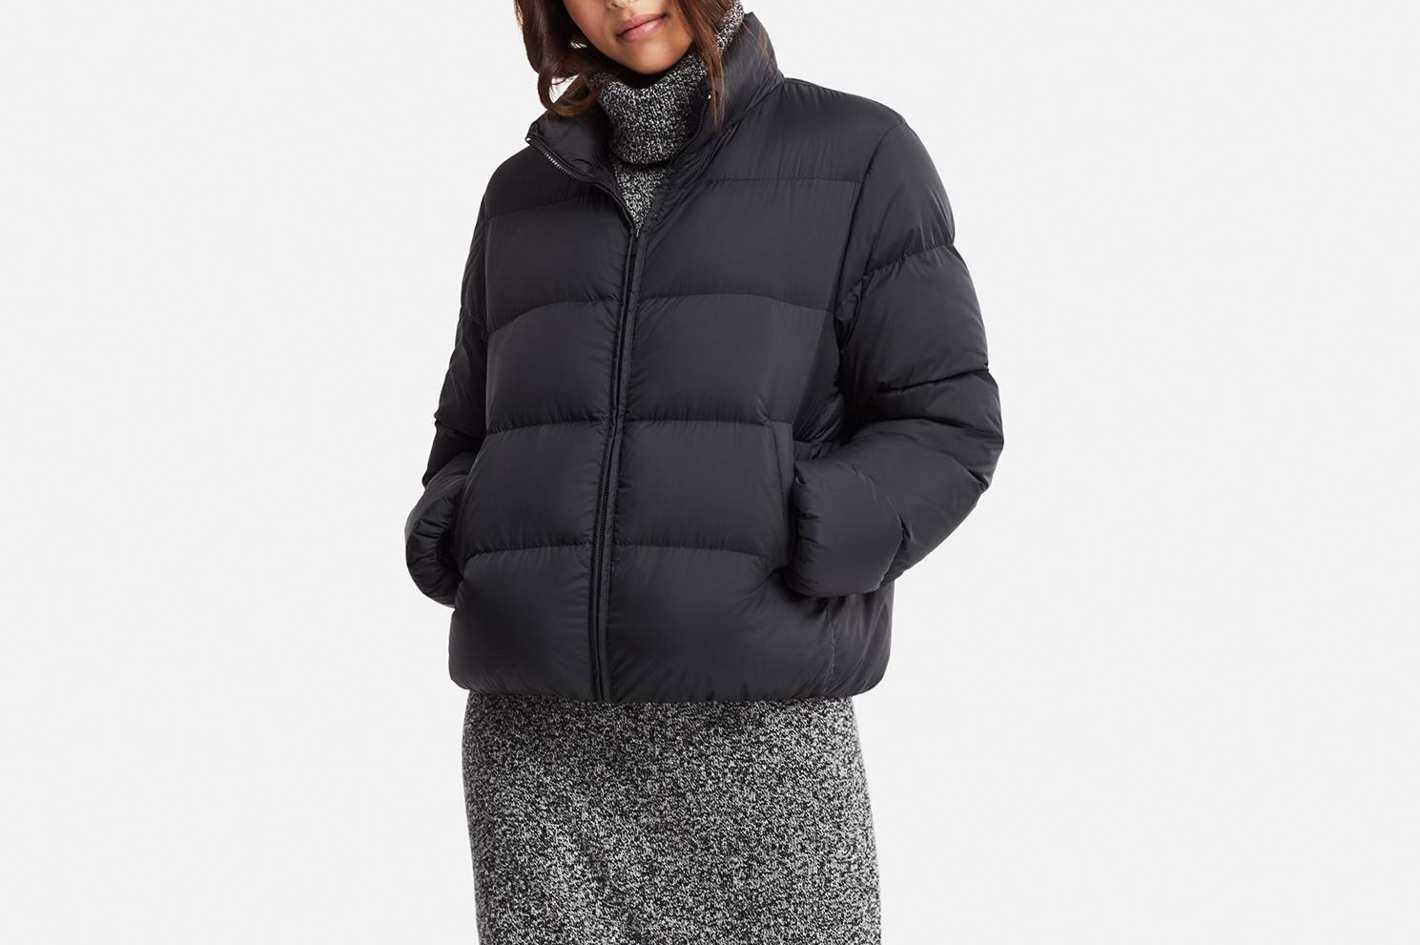 Uniqlo Women's Ultra-Light Down Jacket